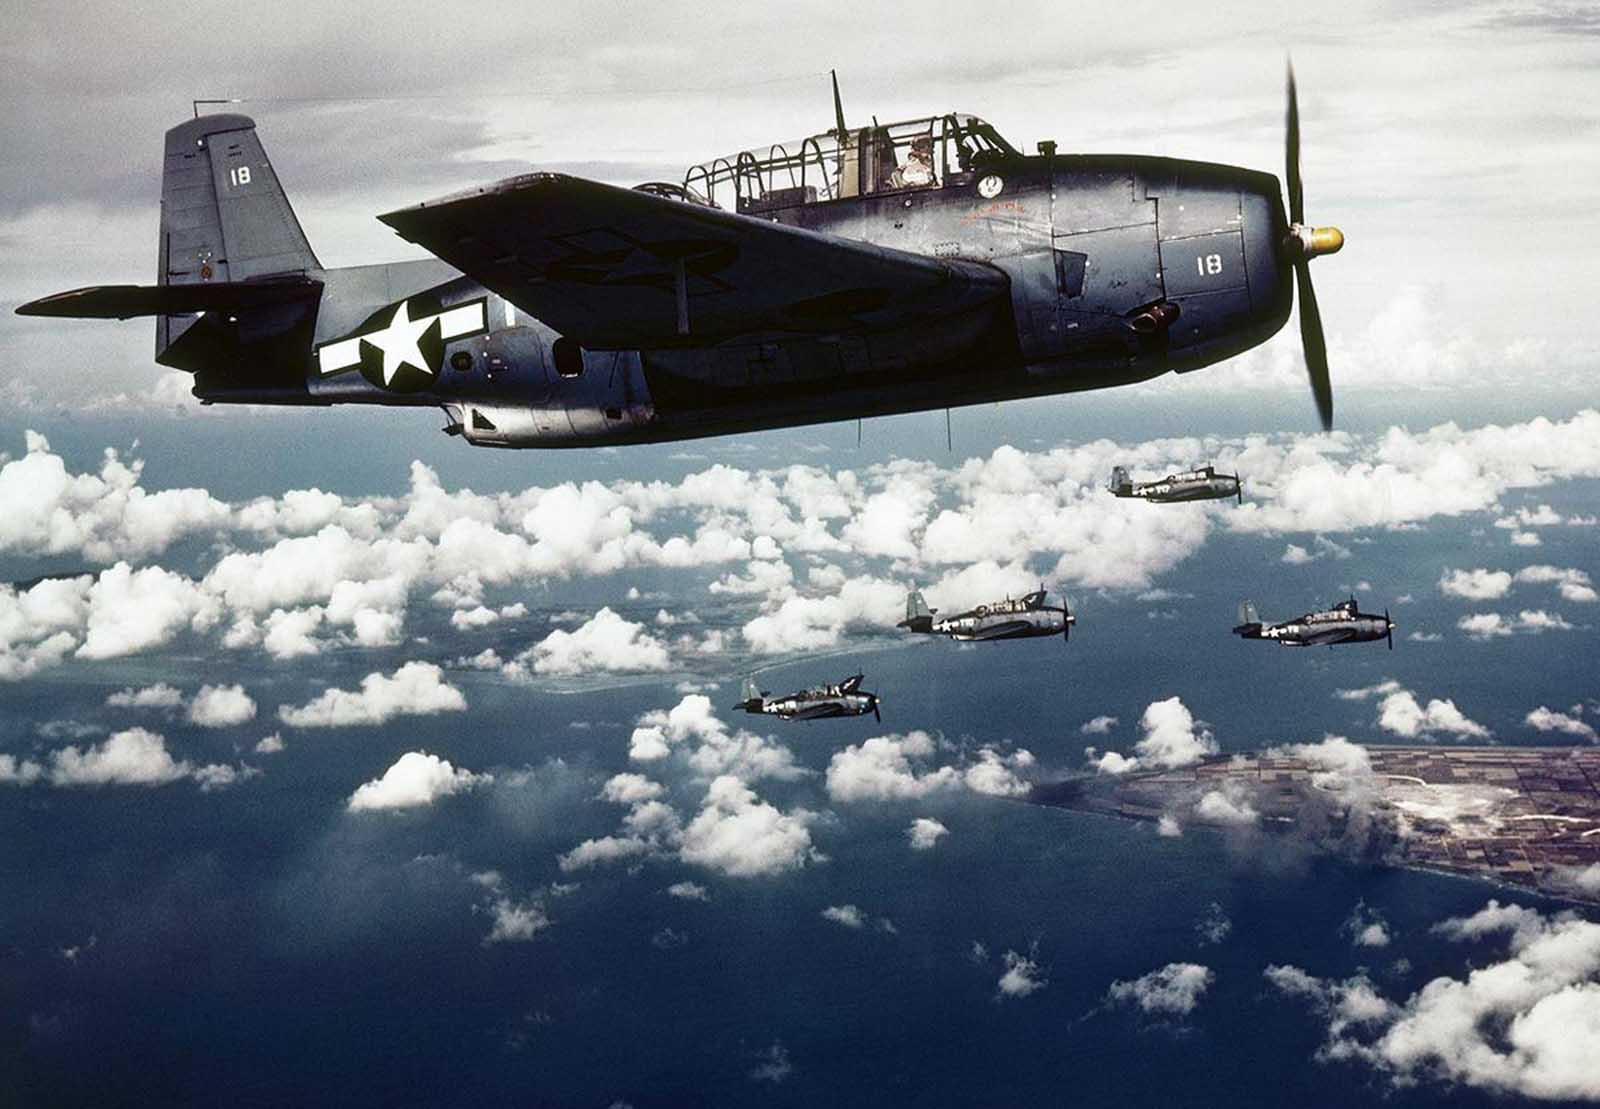 apanese-held Wake Island under attack by U.S. carrier-based planes in November 1943